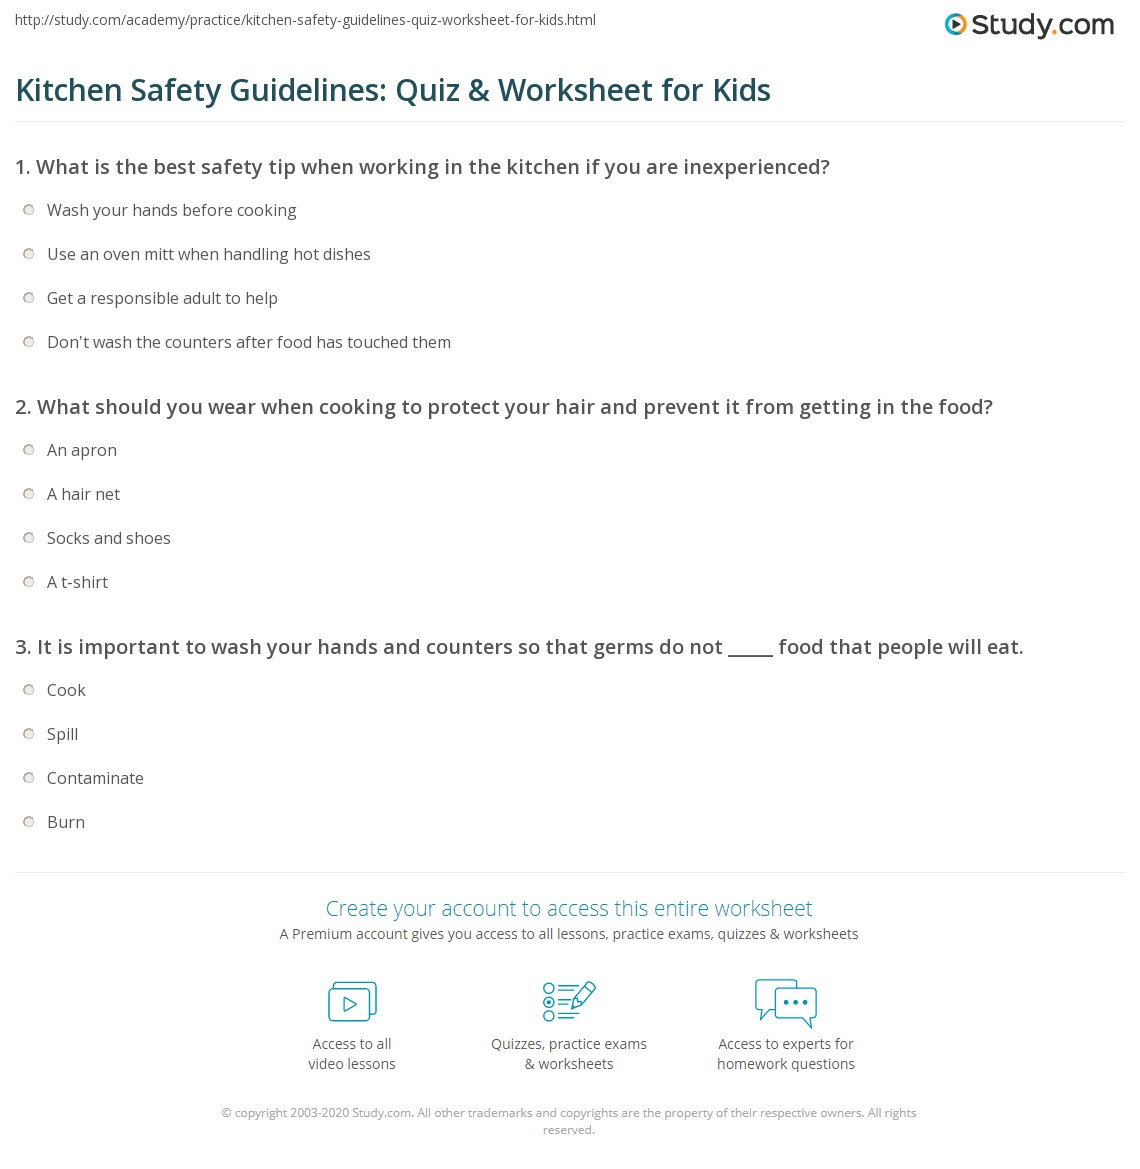 Worksheets Safety Worksheets For Kids kitchen safety guidelines quiz worksheet for kids study com print lesson rules tips worksheet